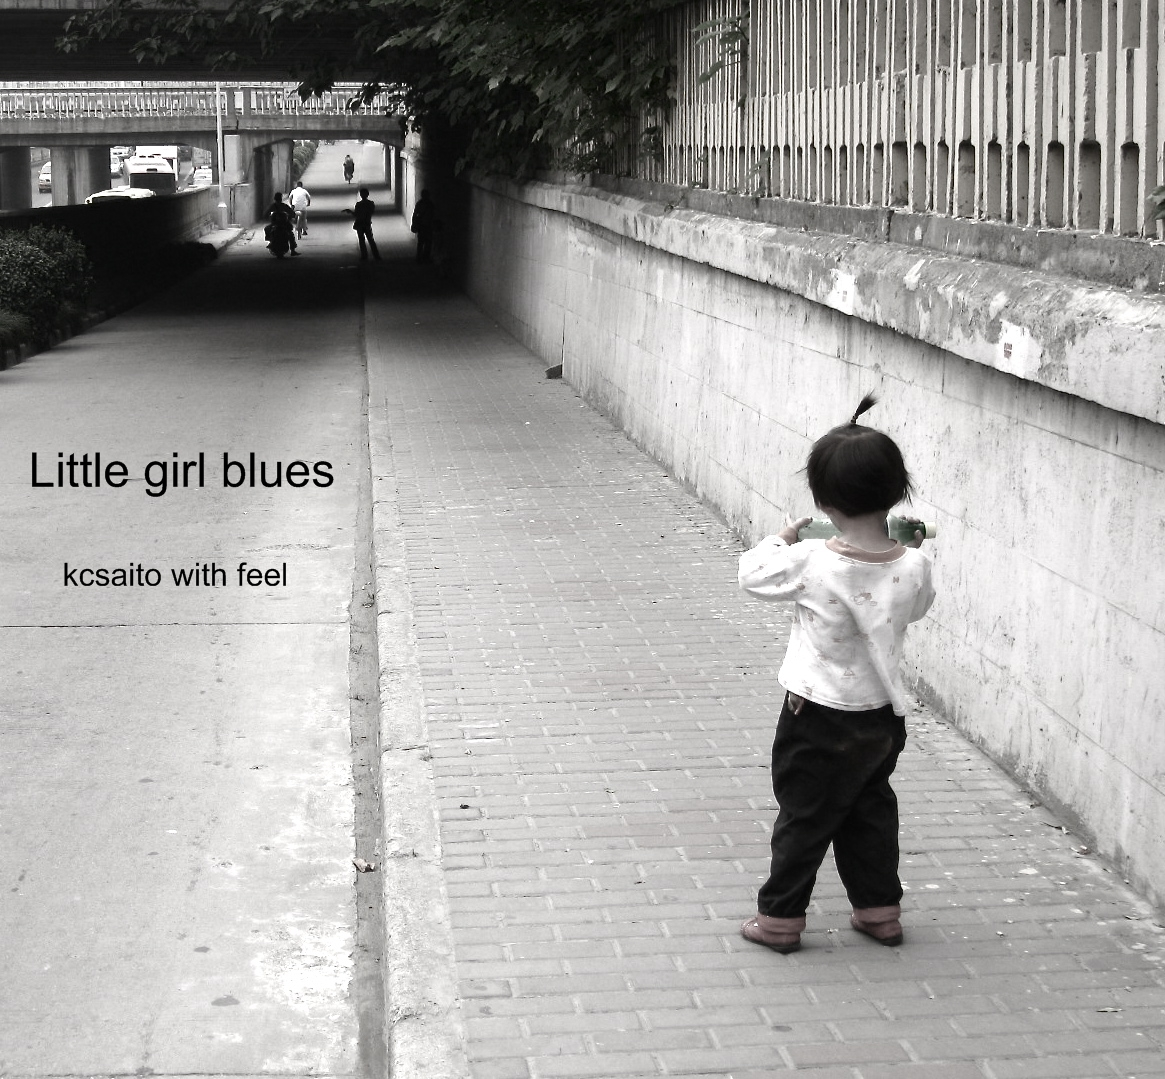 Little girl blues with feel